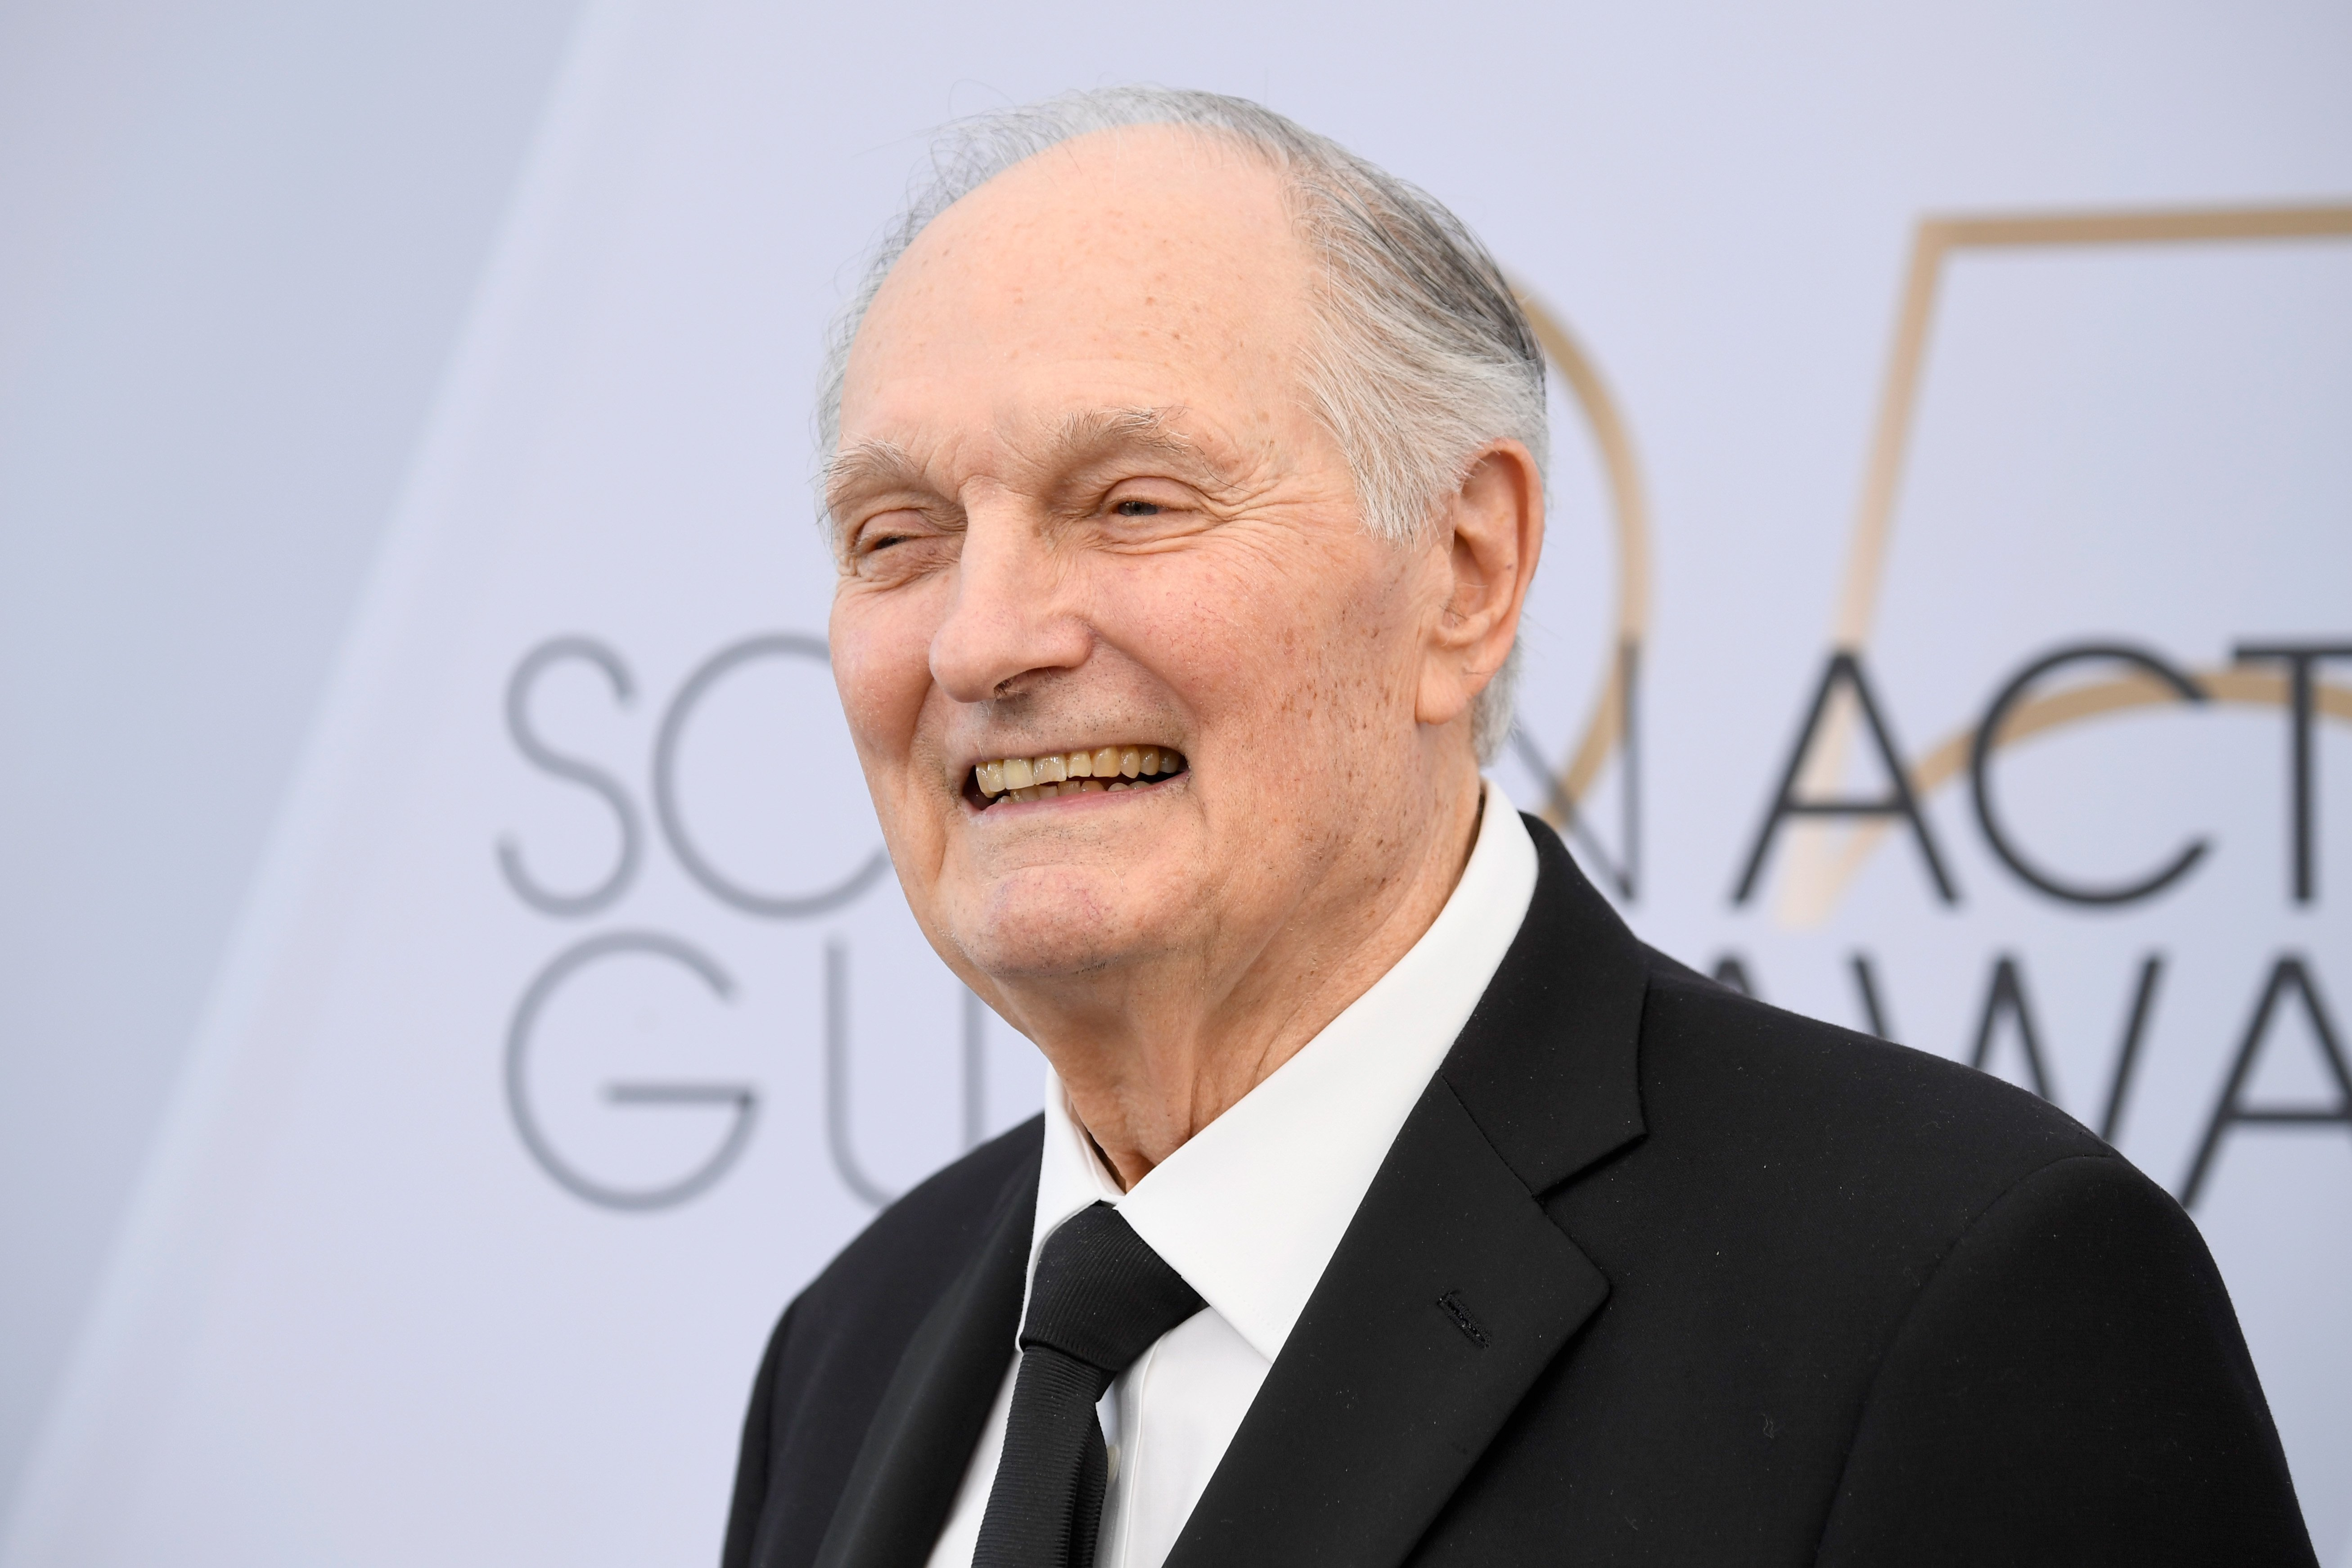 Alan Alda at the 25th Annual Screen ActorsGuild Awards on January 27, 2019 in Los Angeles, California. | Source: Getty Images